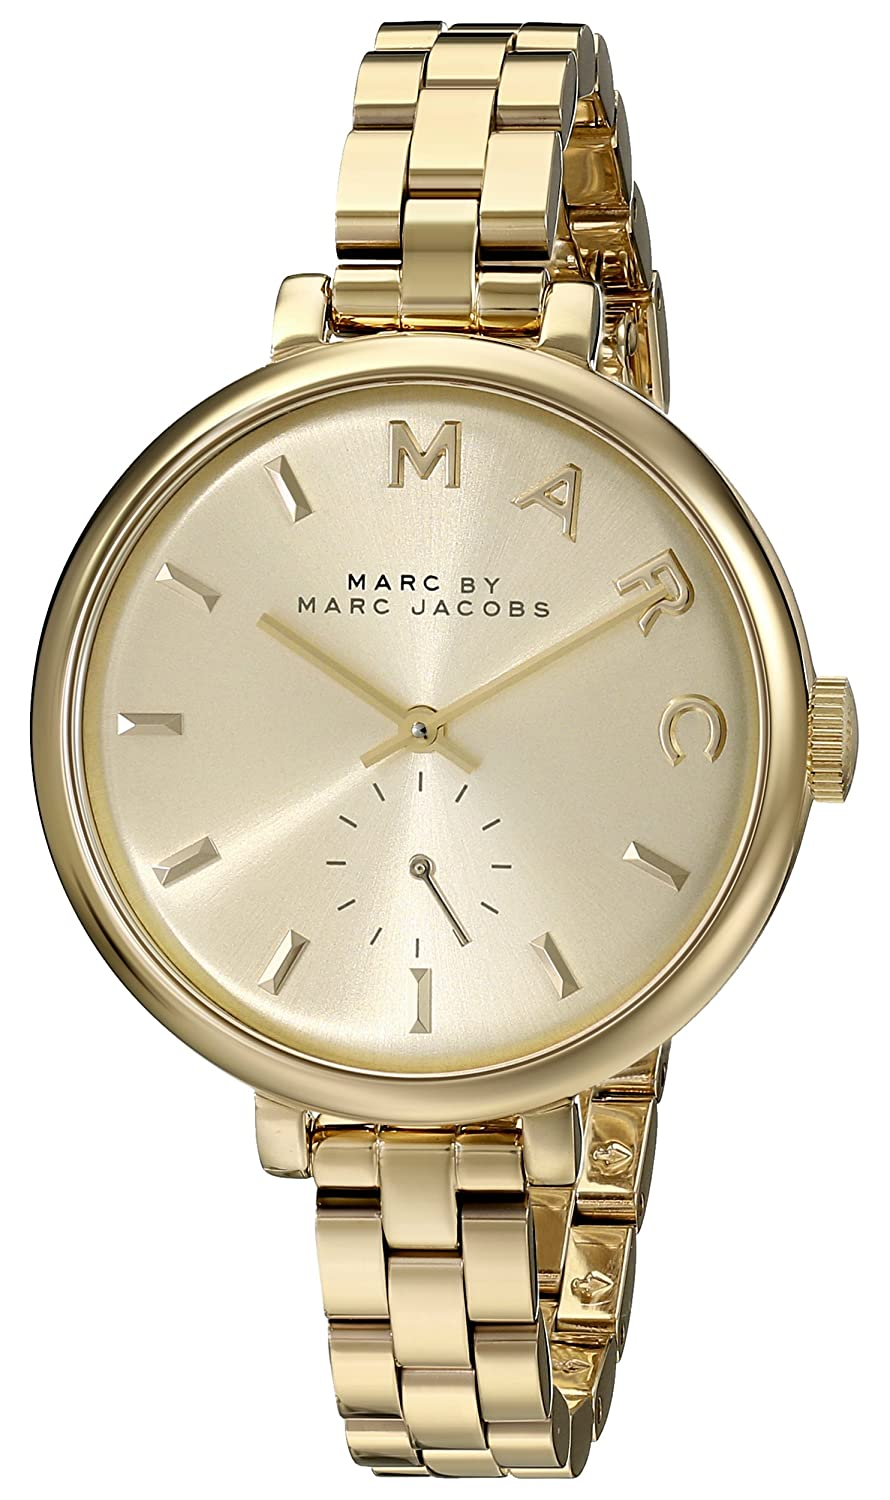 278310a044e56 Amazon.com: Marc by Marc Jacobs Women's MBM3363 Sally Gold-Tone Stainless  Steel Watch with Link Bracelet: Watches